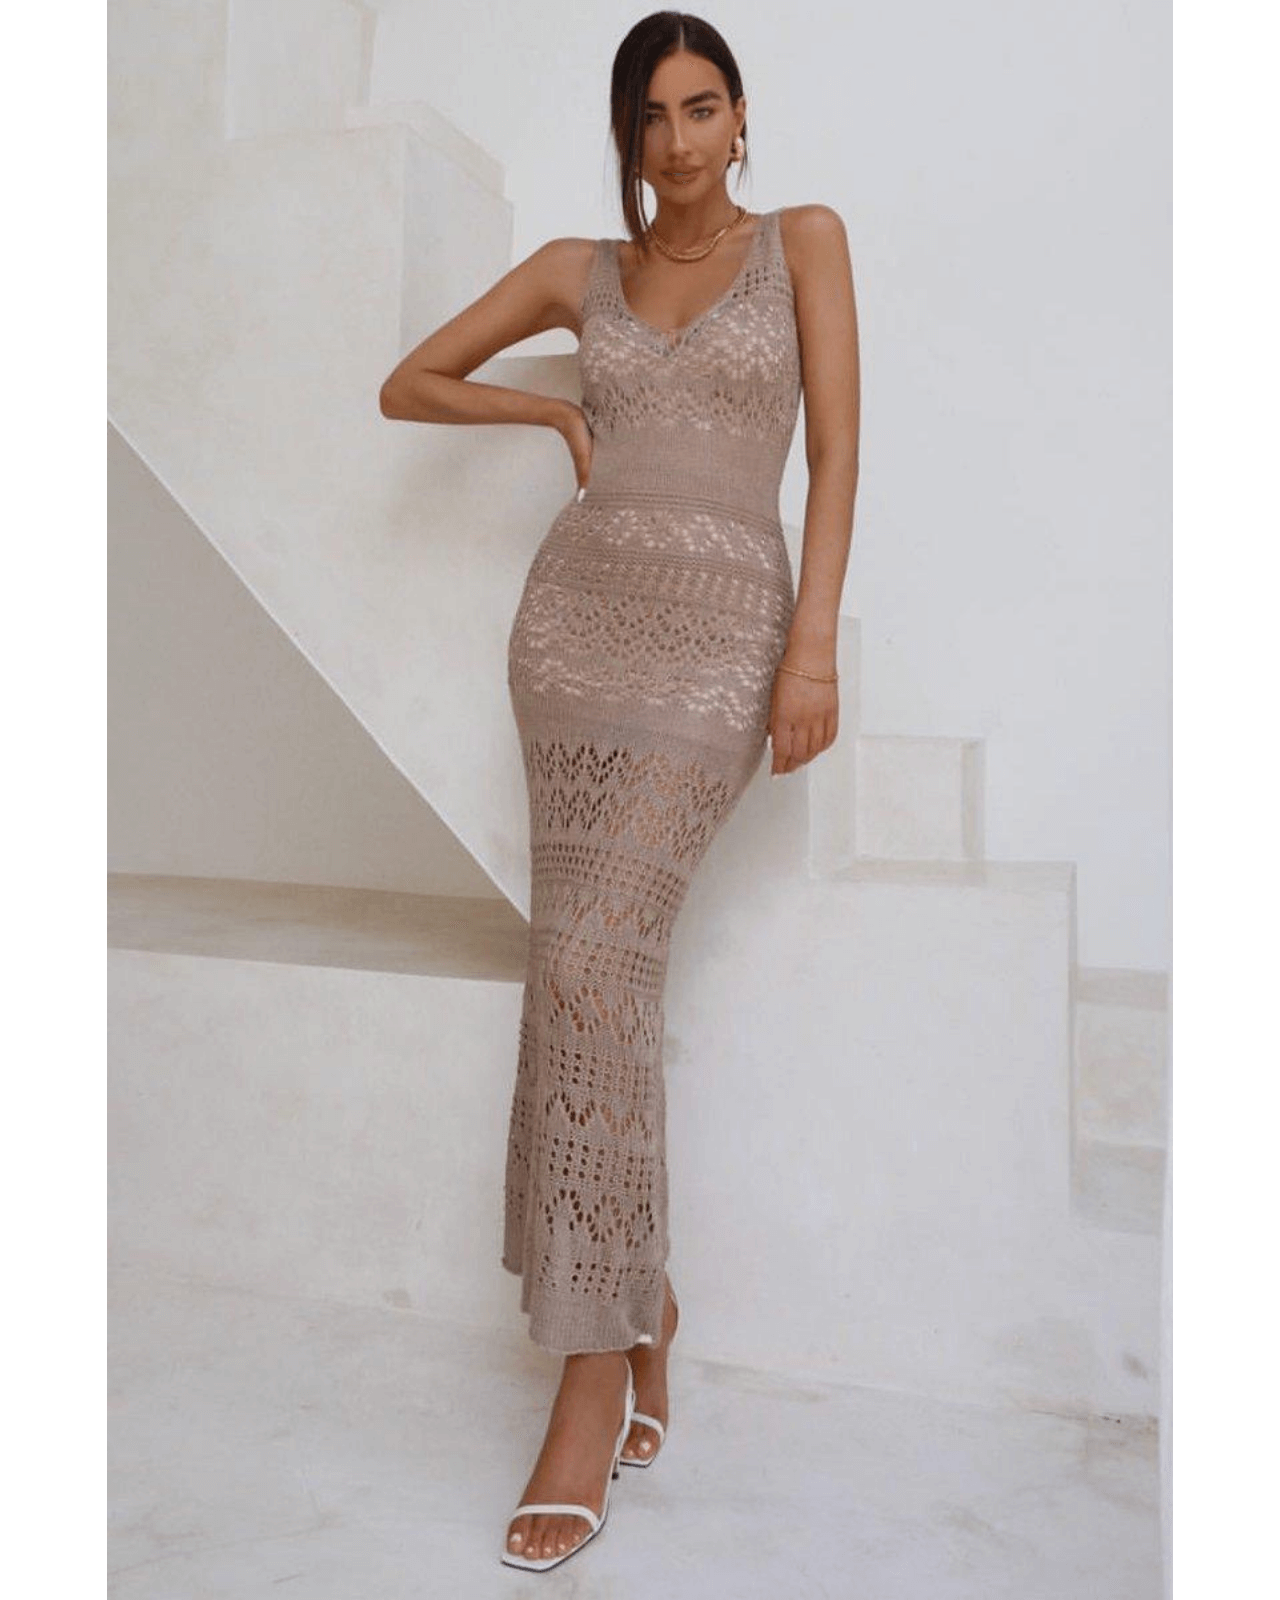 Shona Crochet Maxi Knit Dress - Taupe